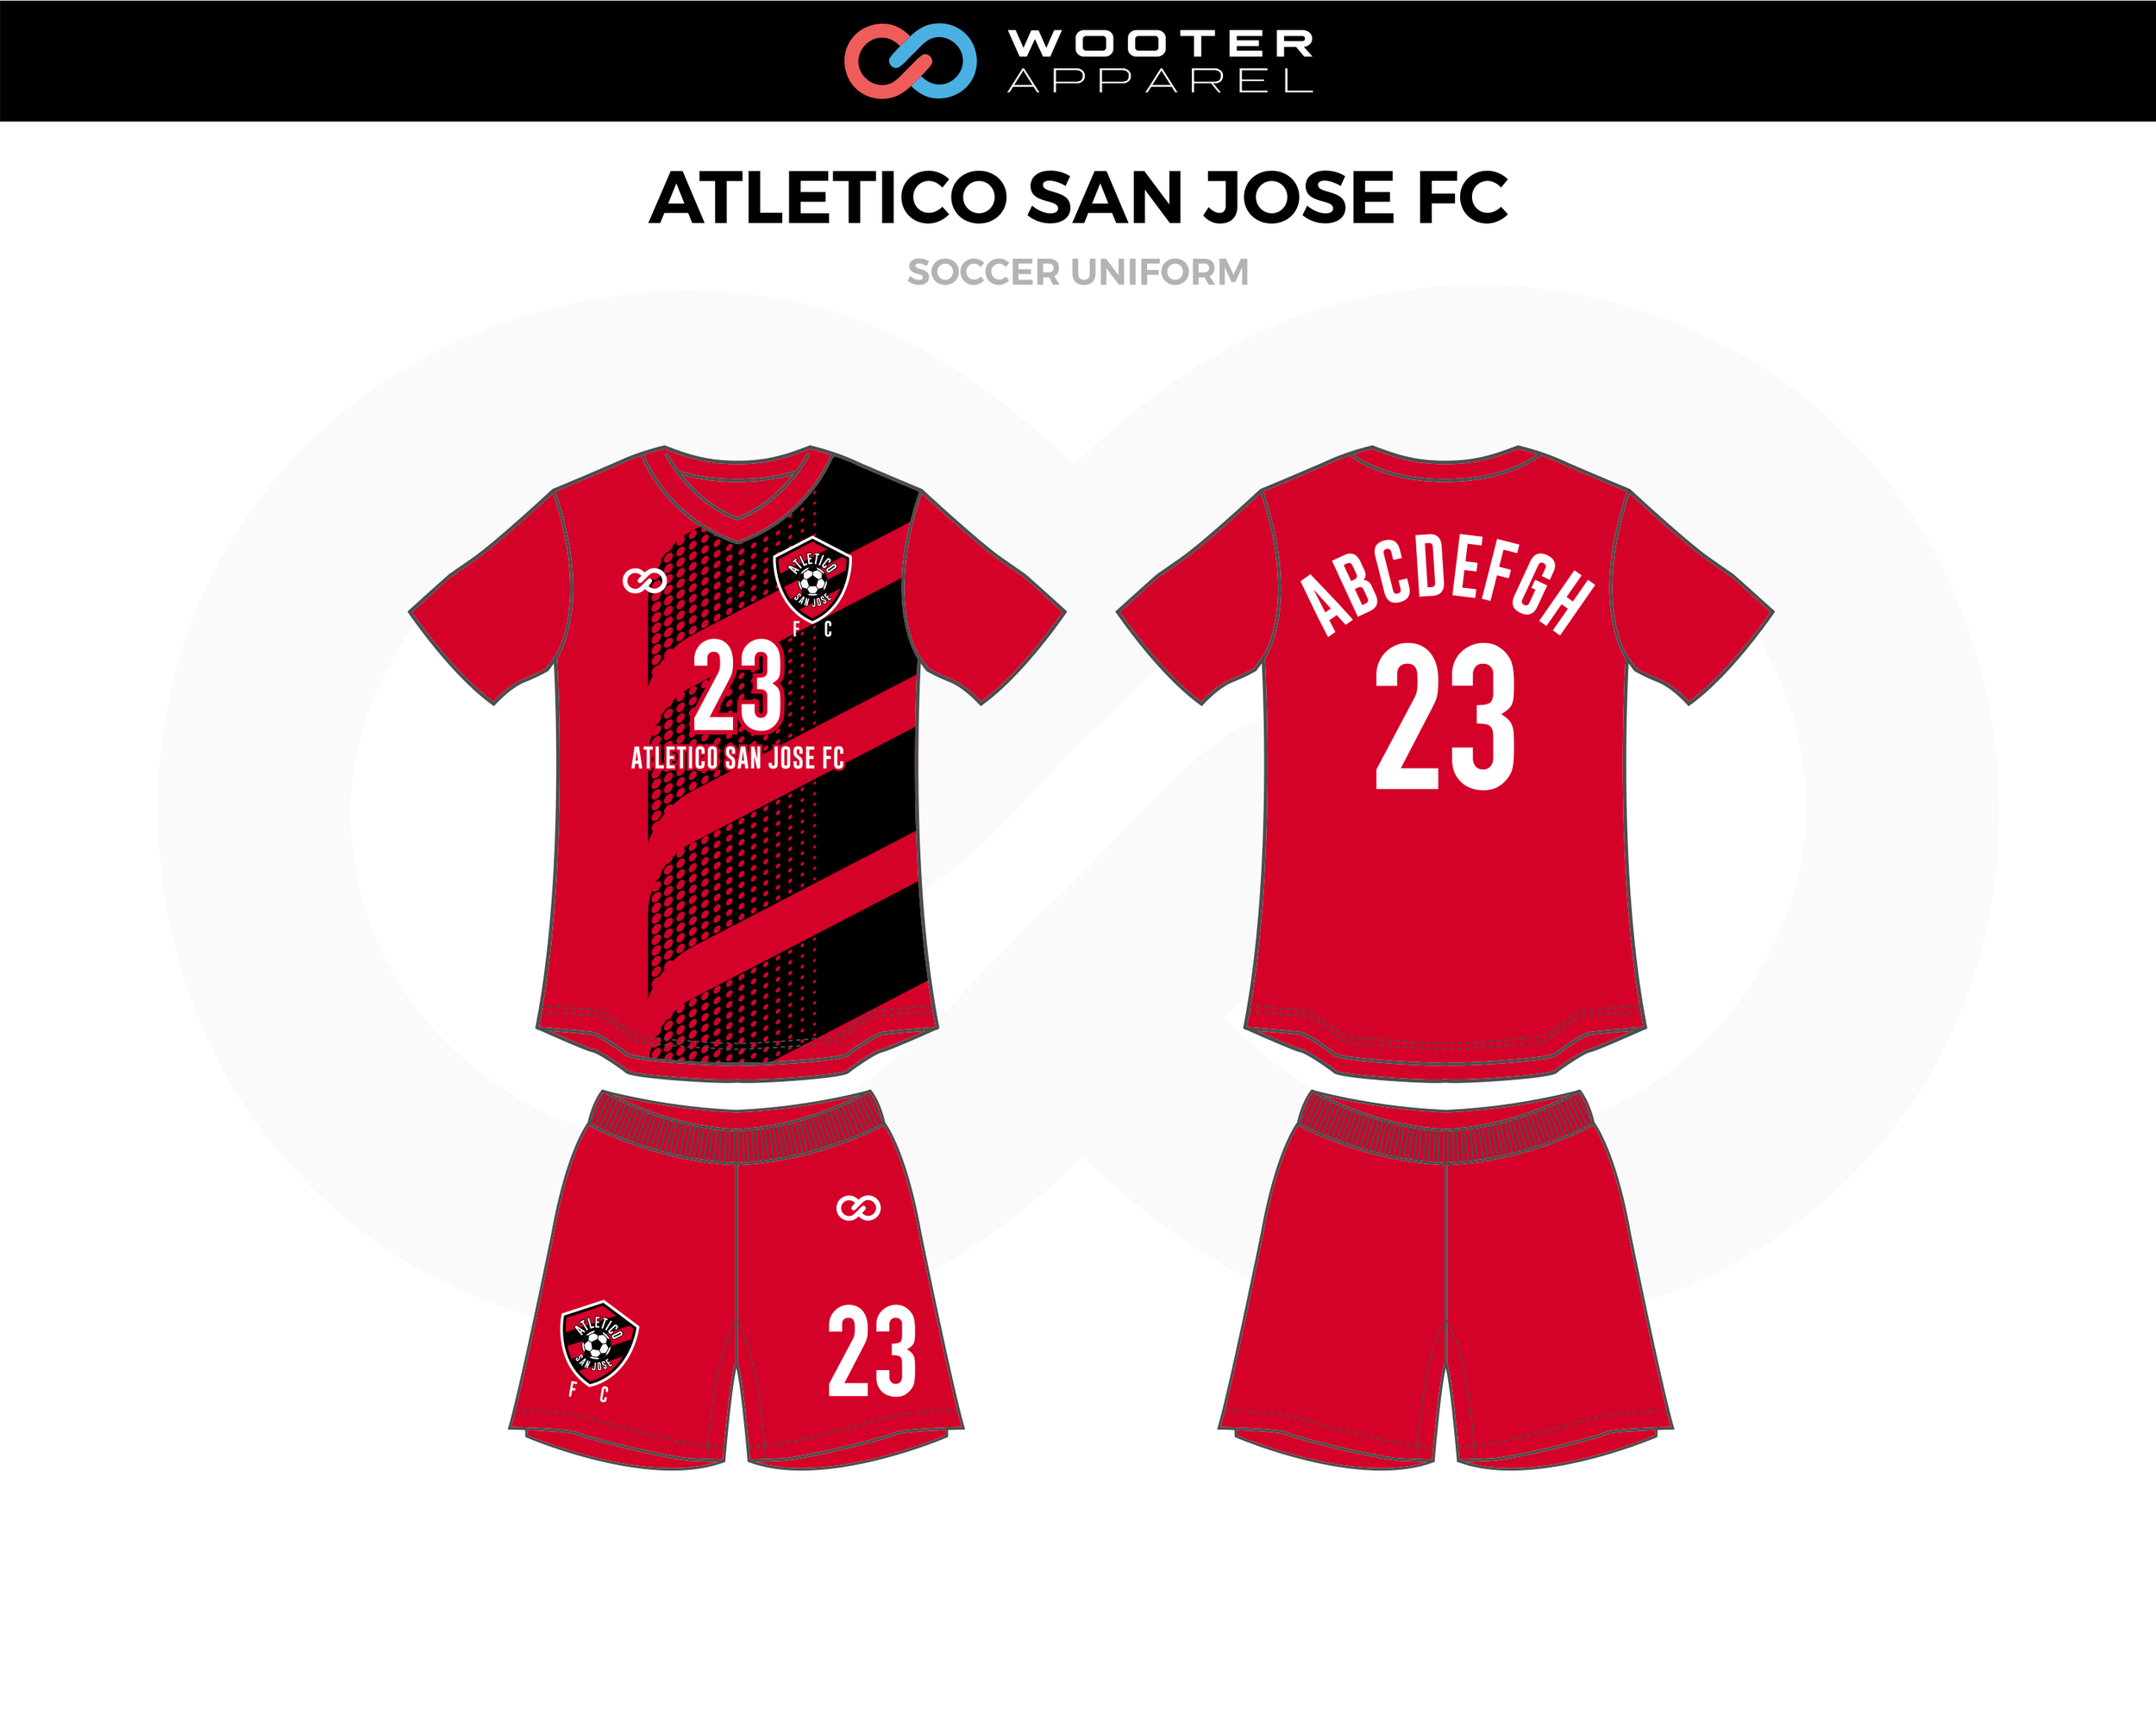 ATLETICO SAN JOSE FC Red Black White Soccer Uniform, Jerseys, and Shorts